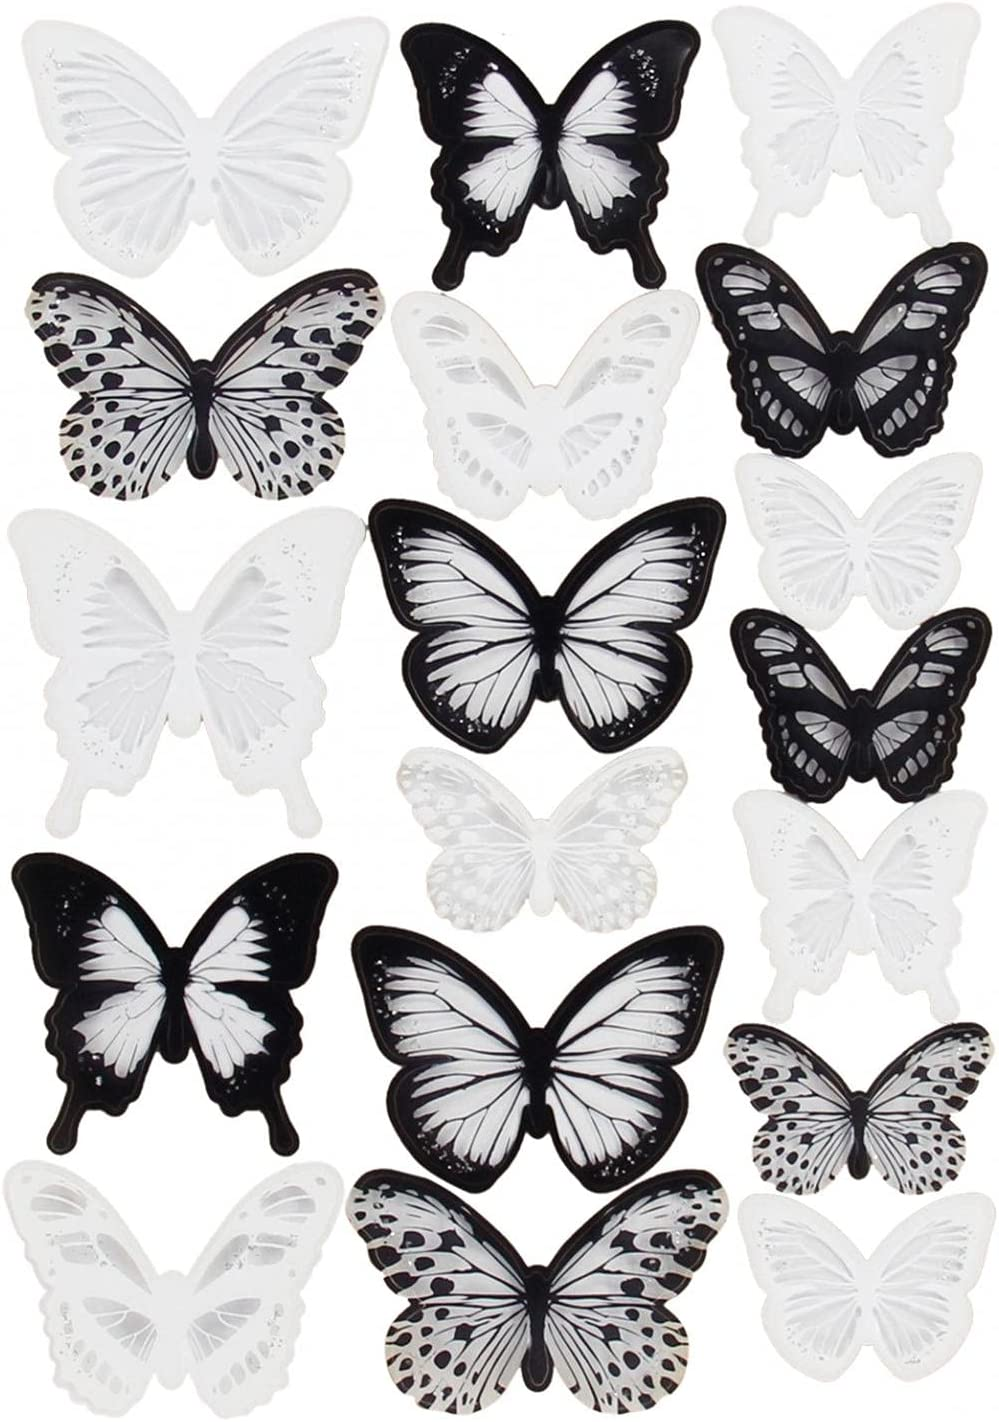 Butterfly Wall Decals NEW before selling ☆ Stickers-3D Simulation Ranking TOP15 De Decor